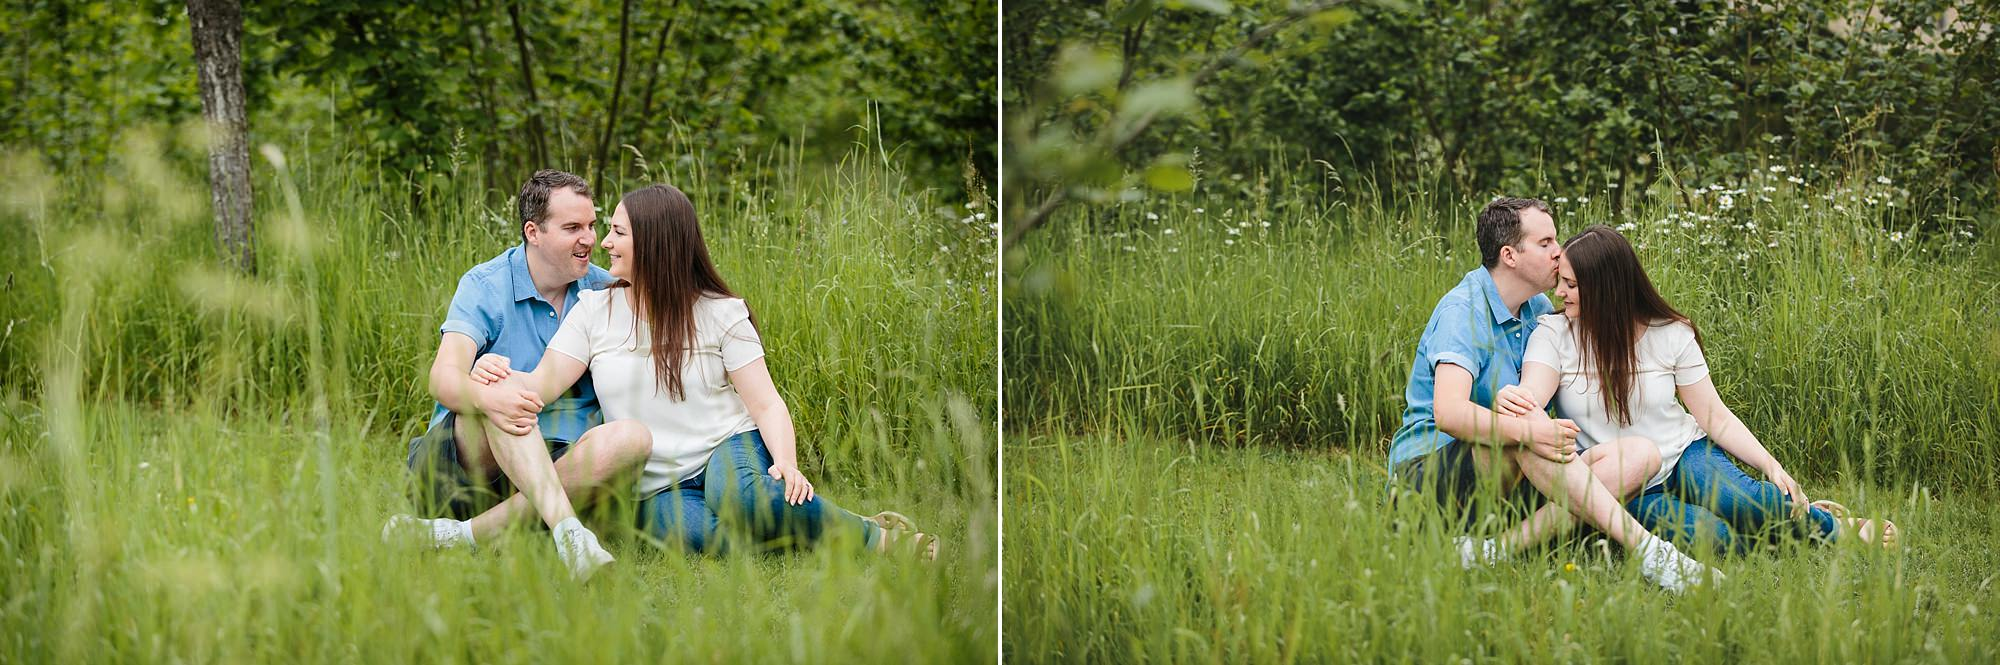 Tonbridge engagement photography a couple sat together in long grass